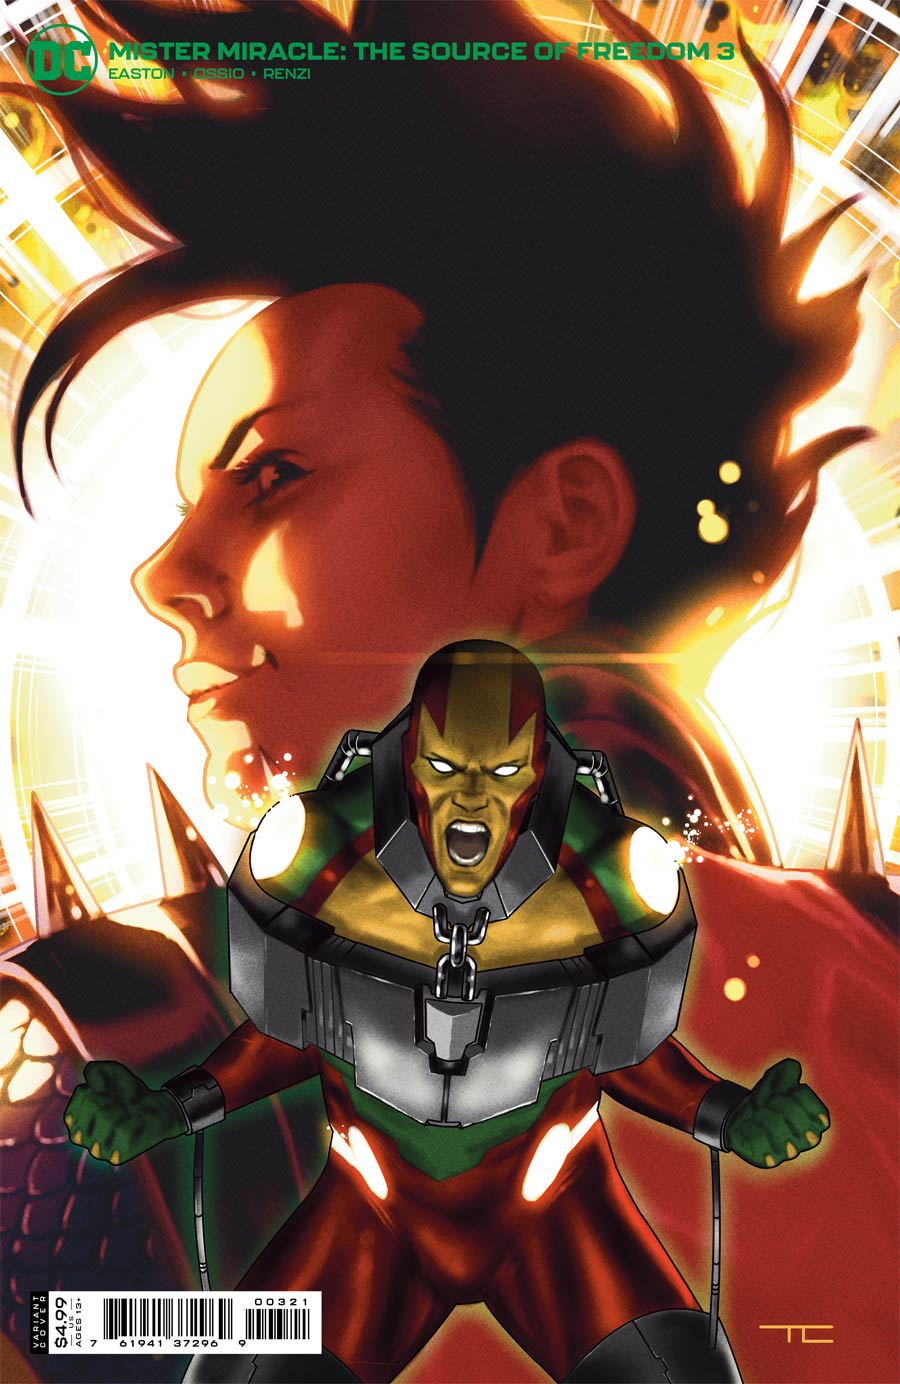 Mister Miracle The Source Of Freedom #3 Cover B Variant Taurin Clarke Card Stock Cover